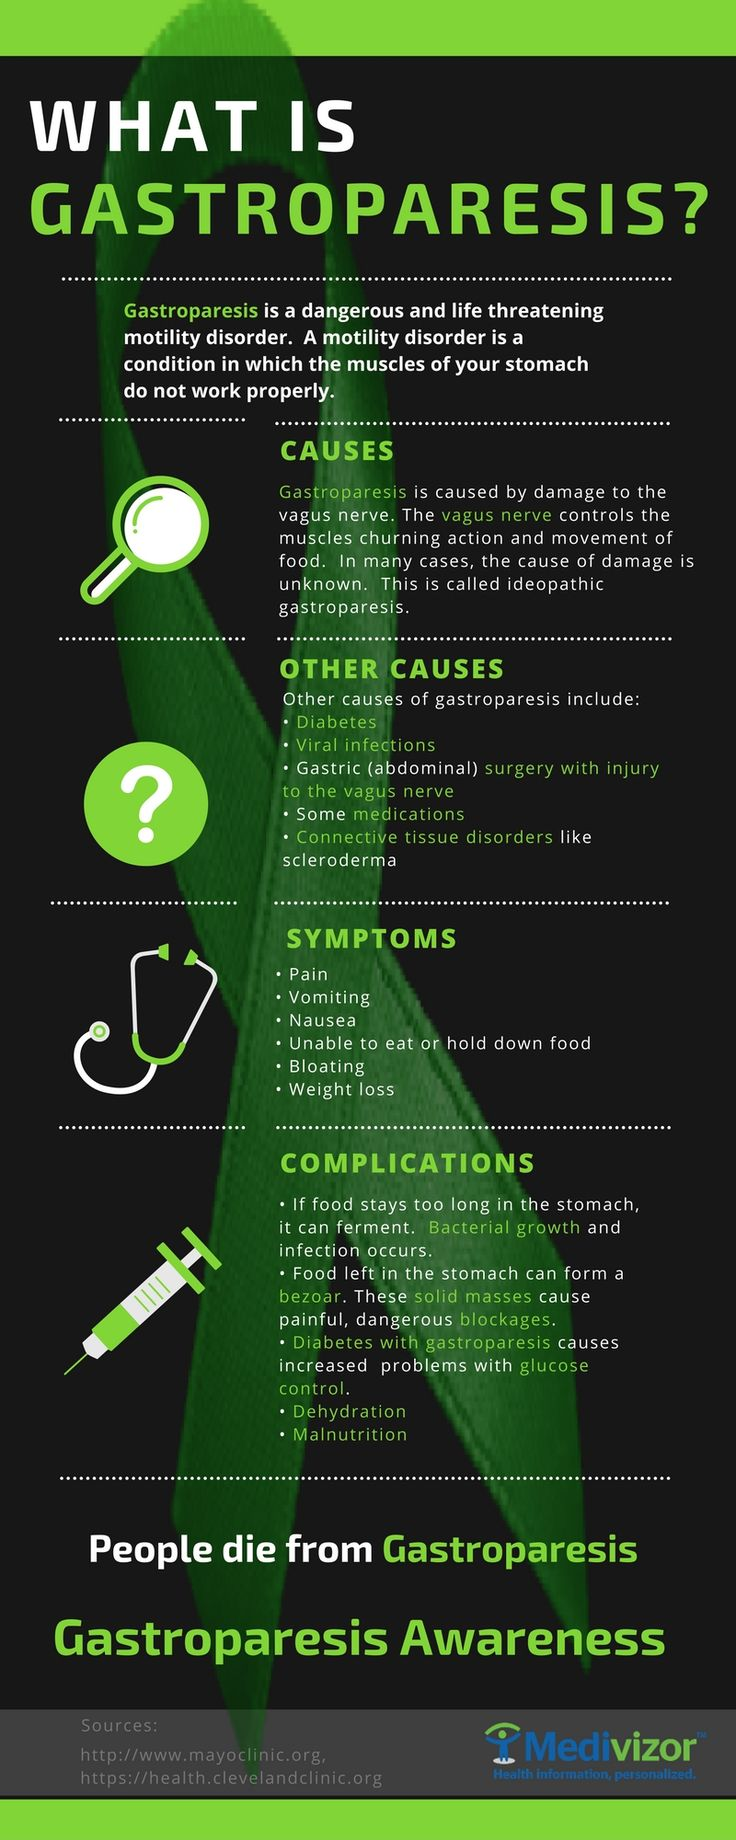 For Gastroparesis Awareness month, we've created an infographic that explains the causes, symptoms and complications of gastroparesis.